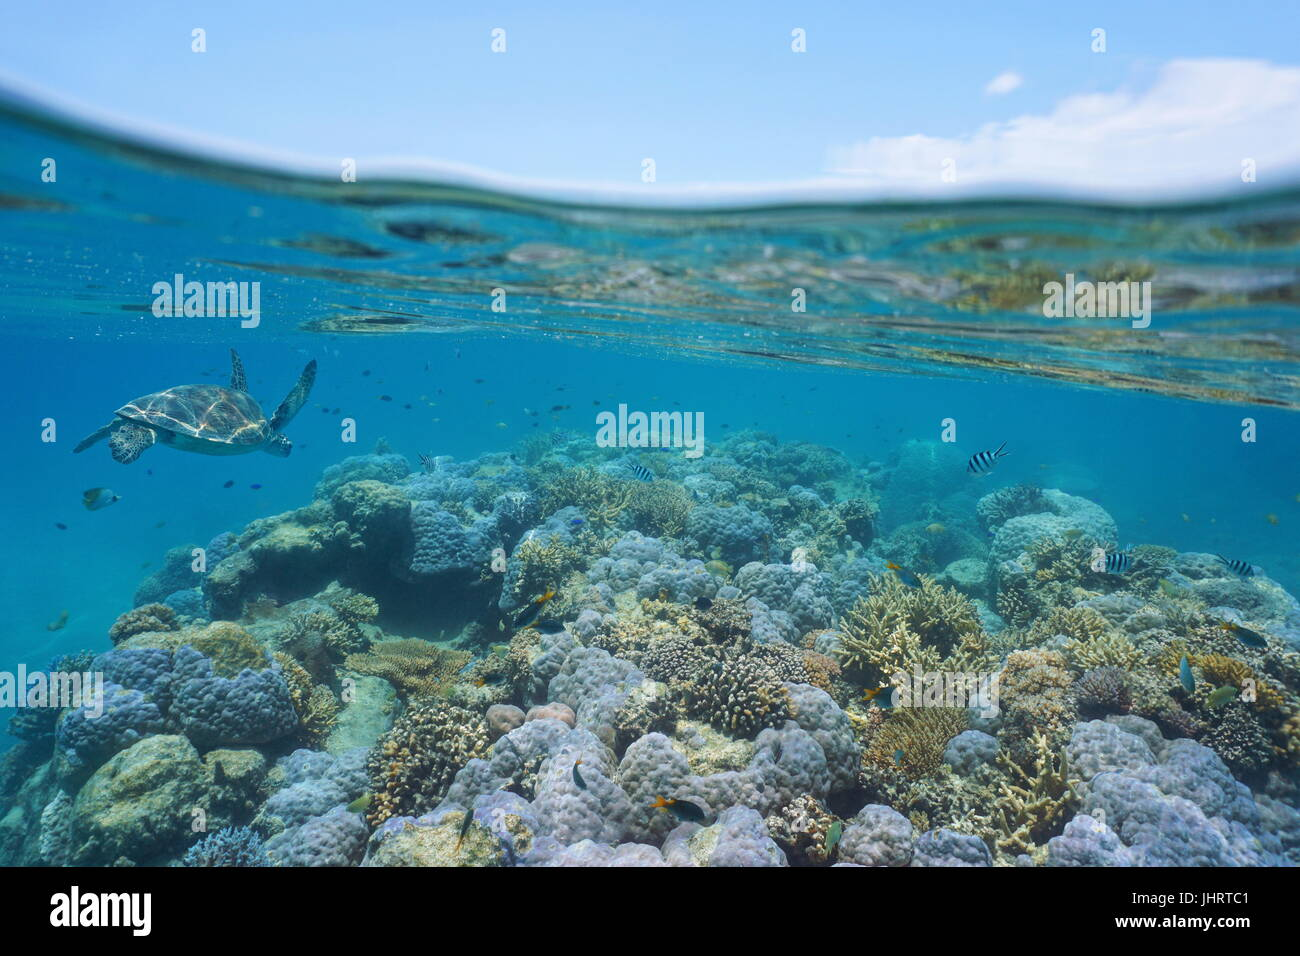 Shallow coral reef with a green sea turtle and fishes underwater, New Caledonia, south Pacific ocean - Stock Image